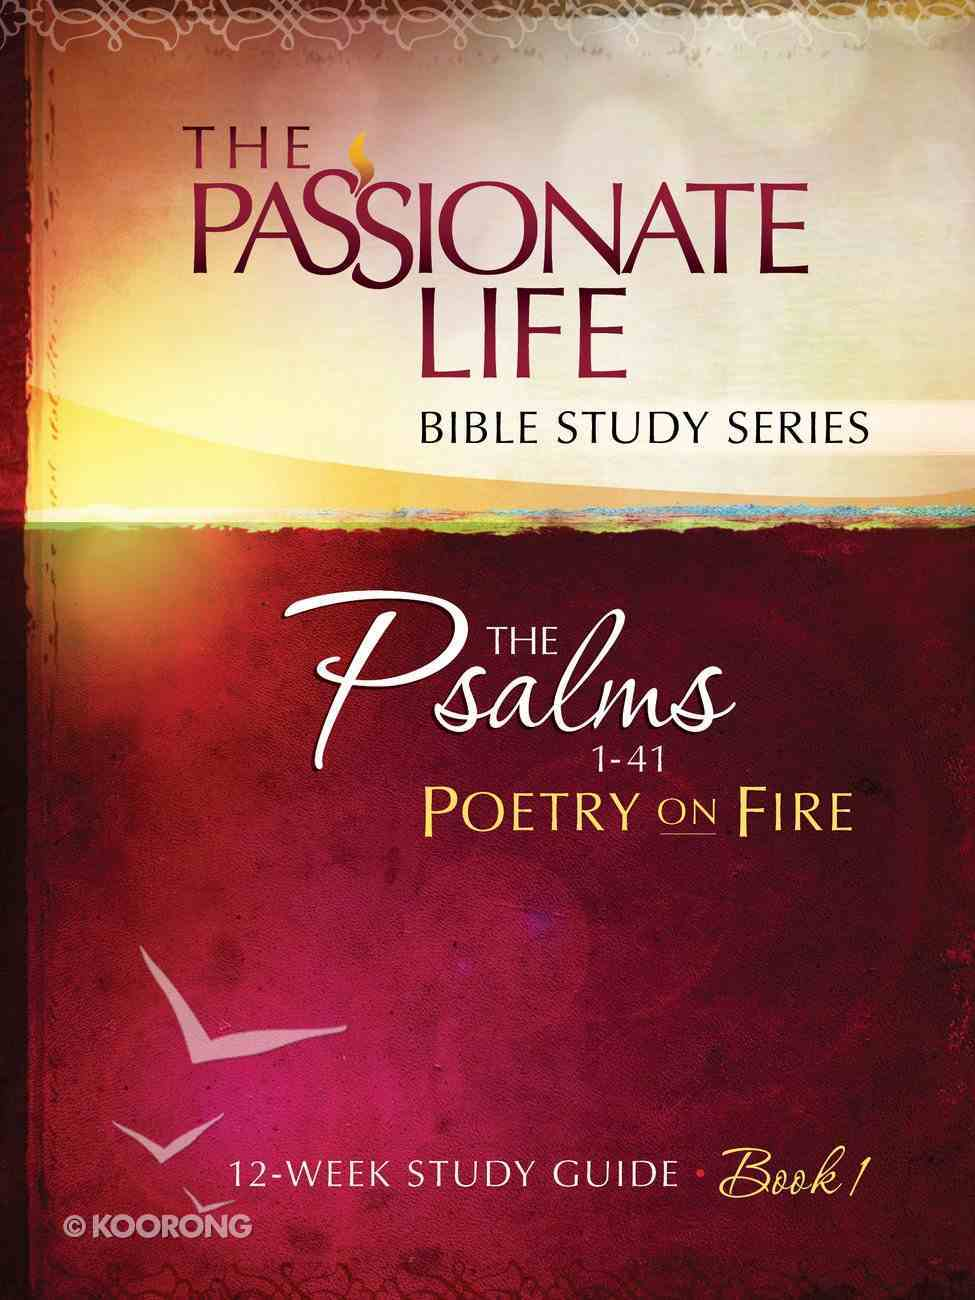 Psalms - Poetry on Fire (The Passionate Life Bible Study Series) eBook